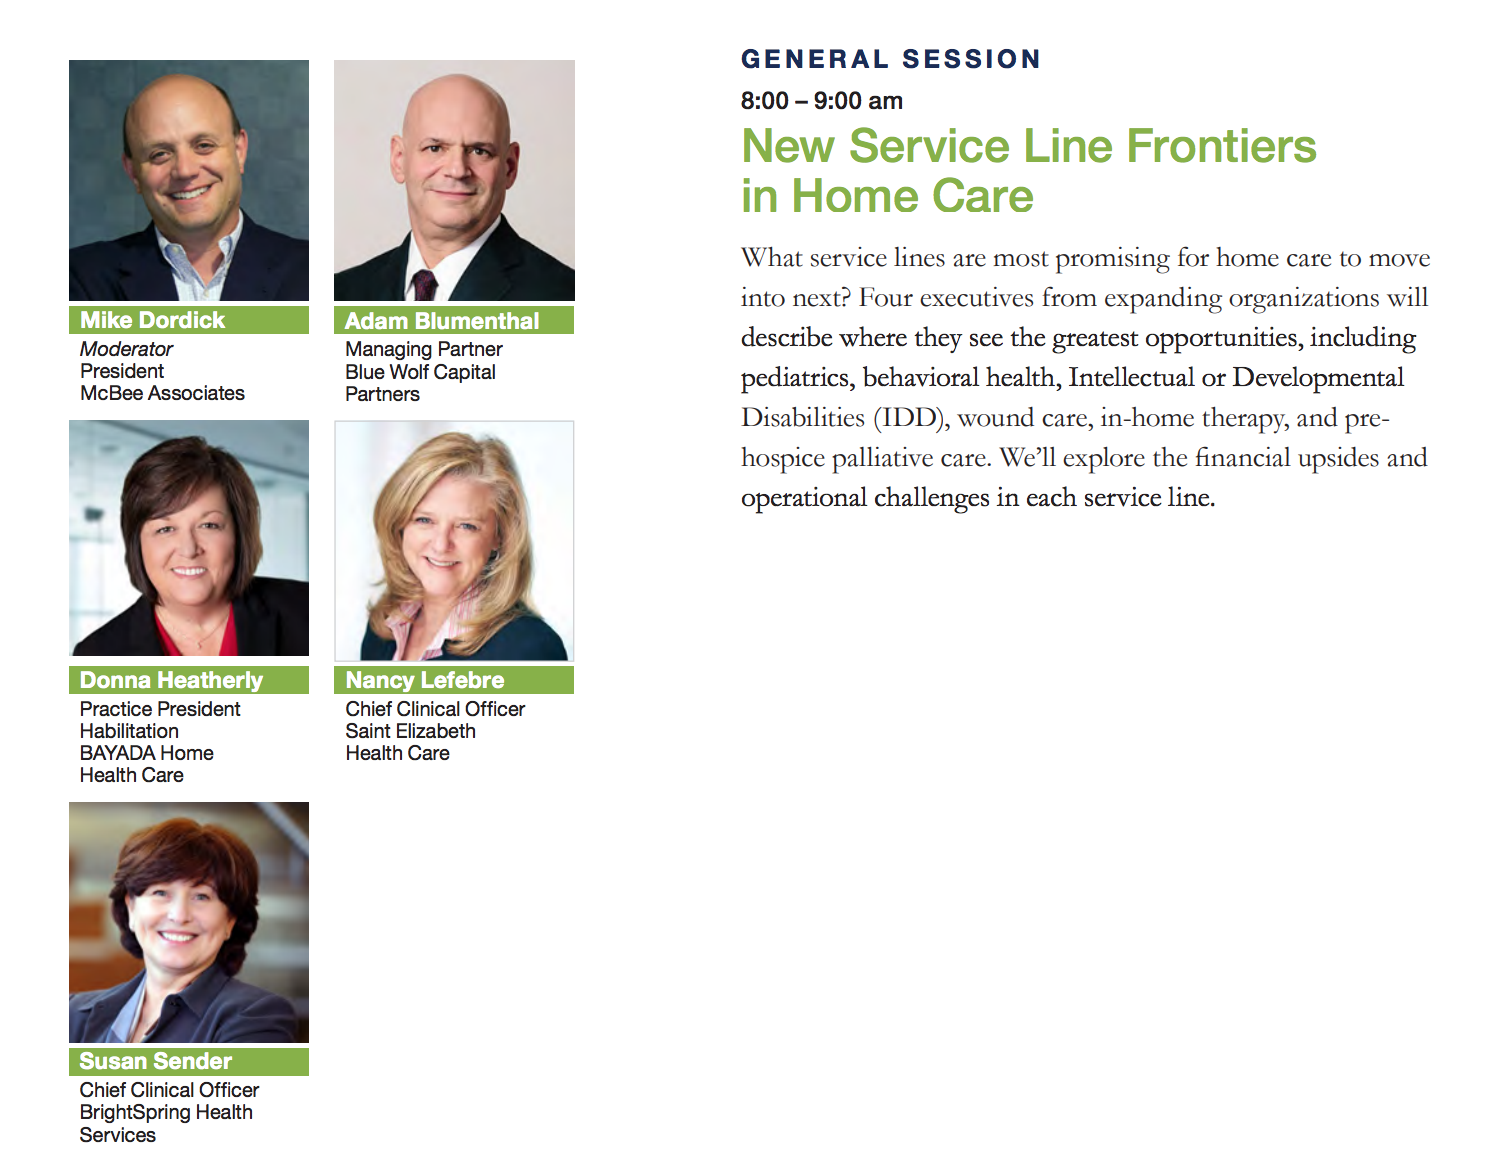 general session: new service line frontiers in home care